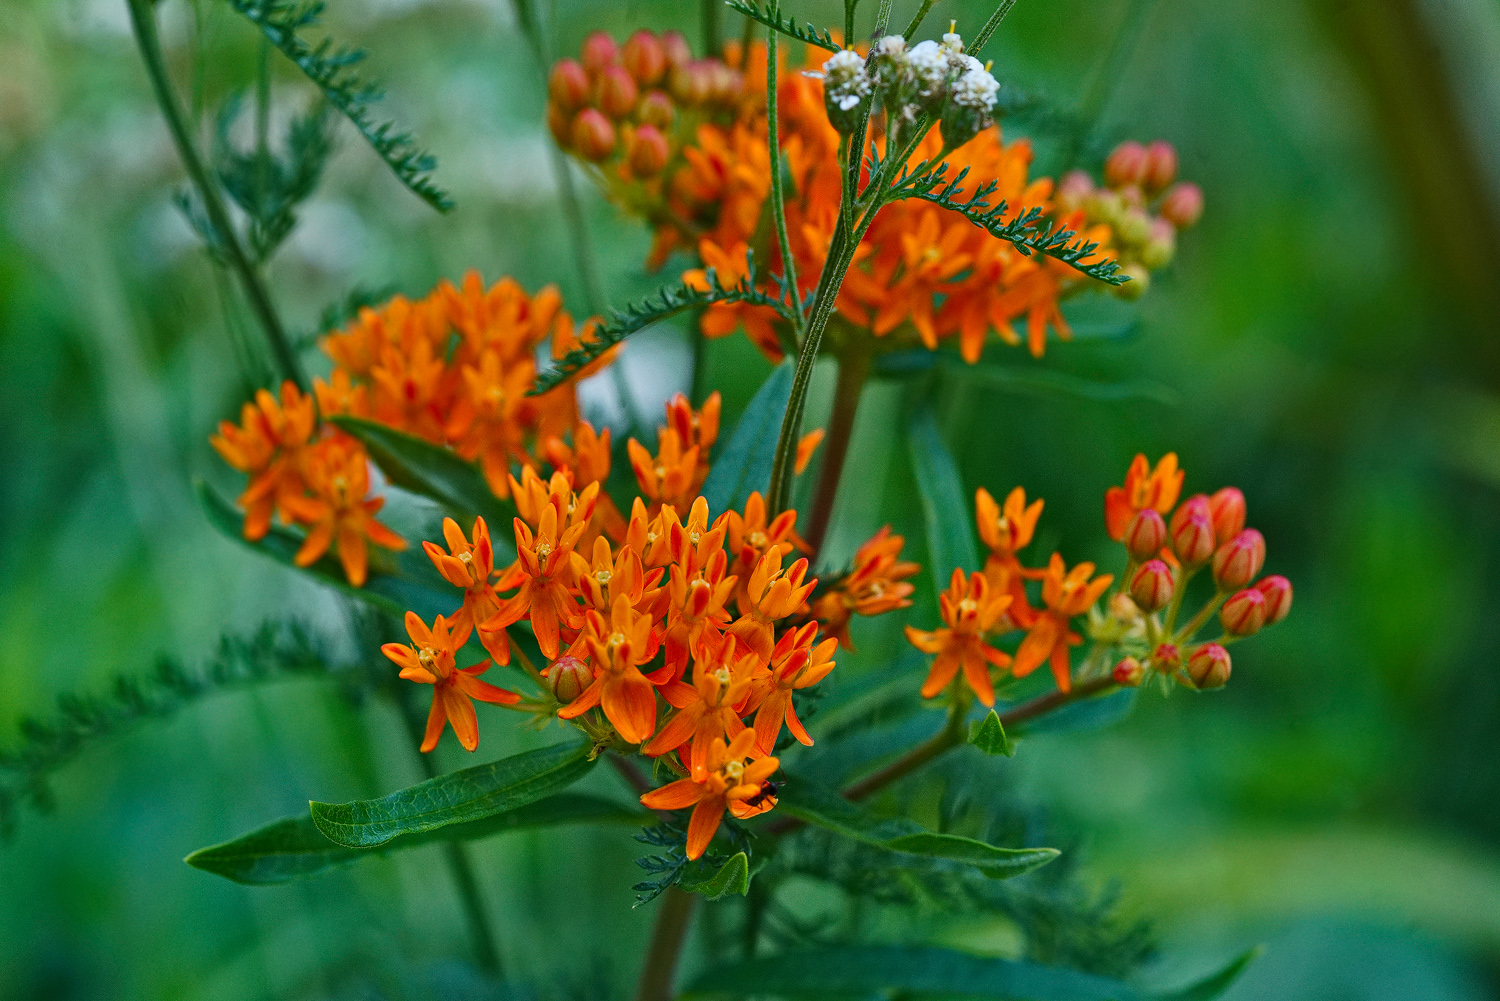 butterfly weed in situ dsc aw author sava gregory and verena